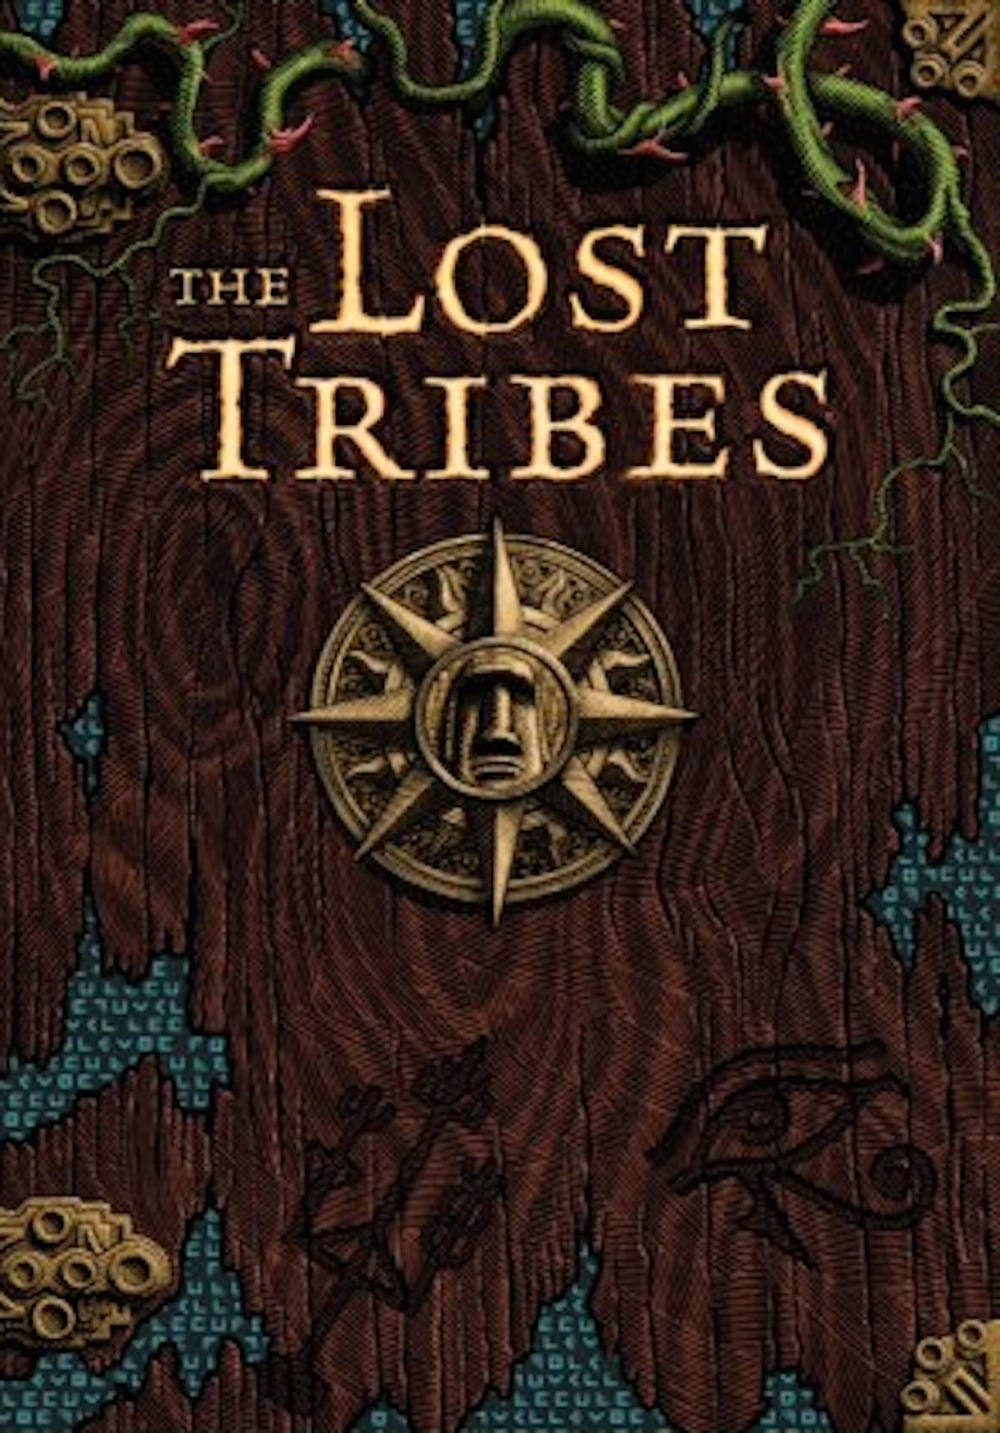 The Lost Tribes by C. Taylor-Butler (available March 2015)